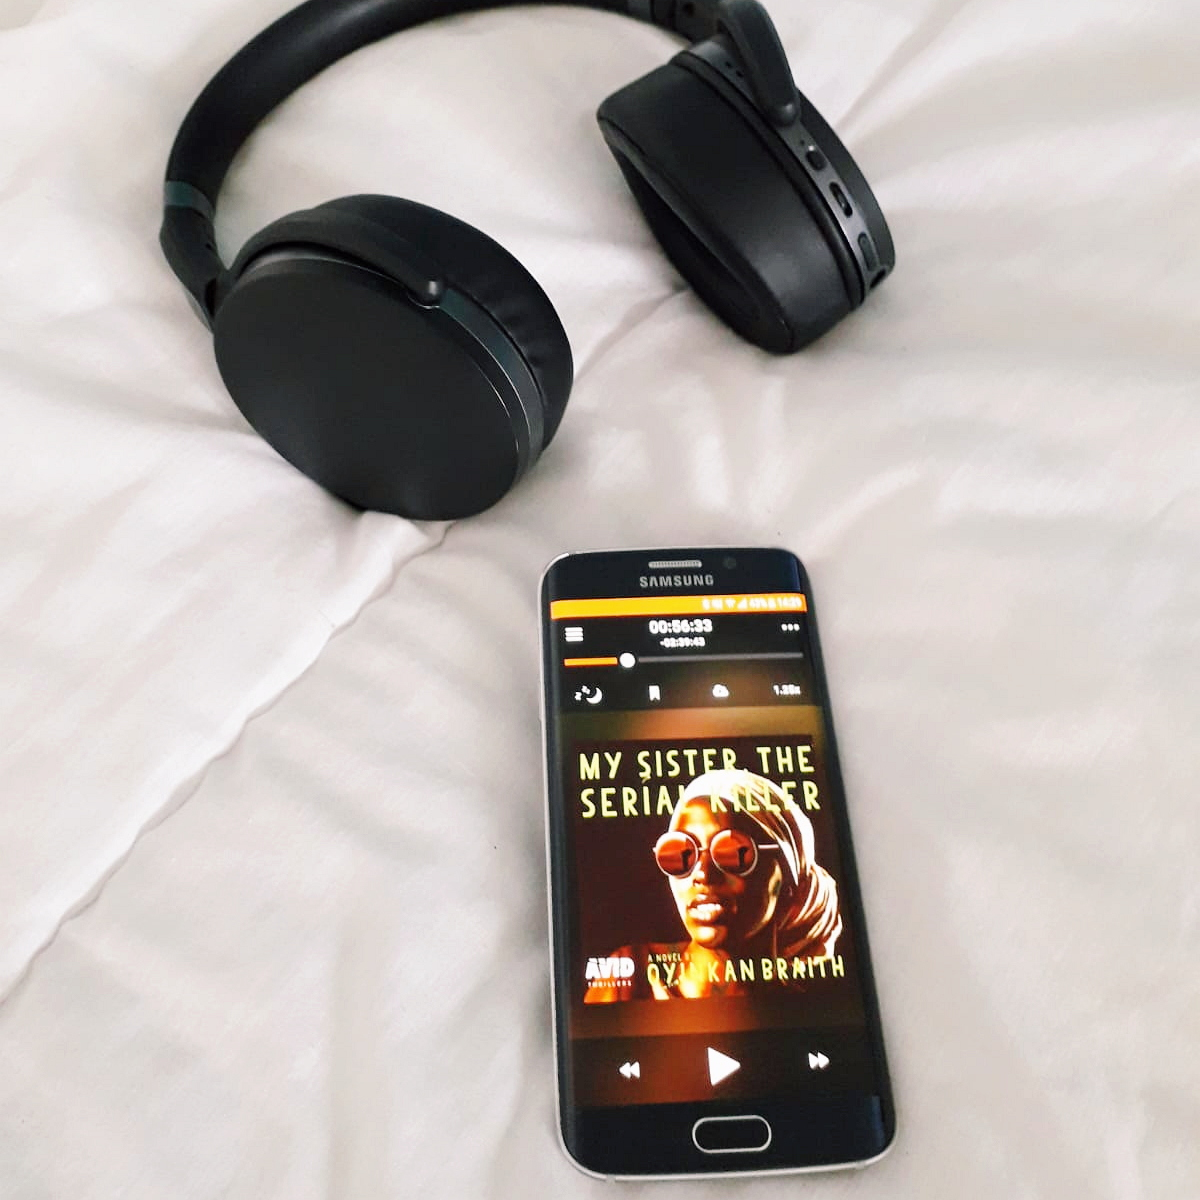 Read my reviews on theveryhungrybookworm.com!